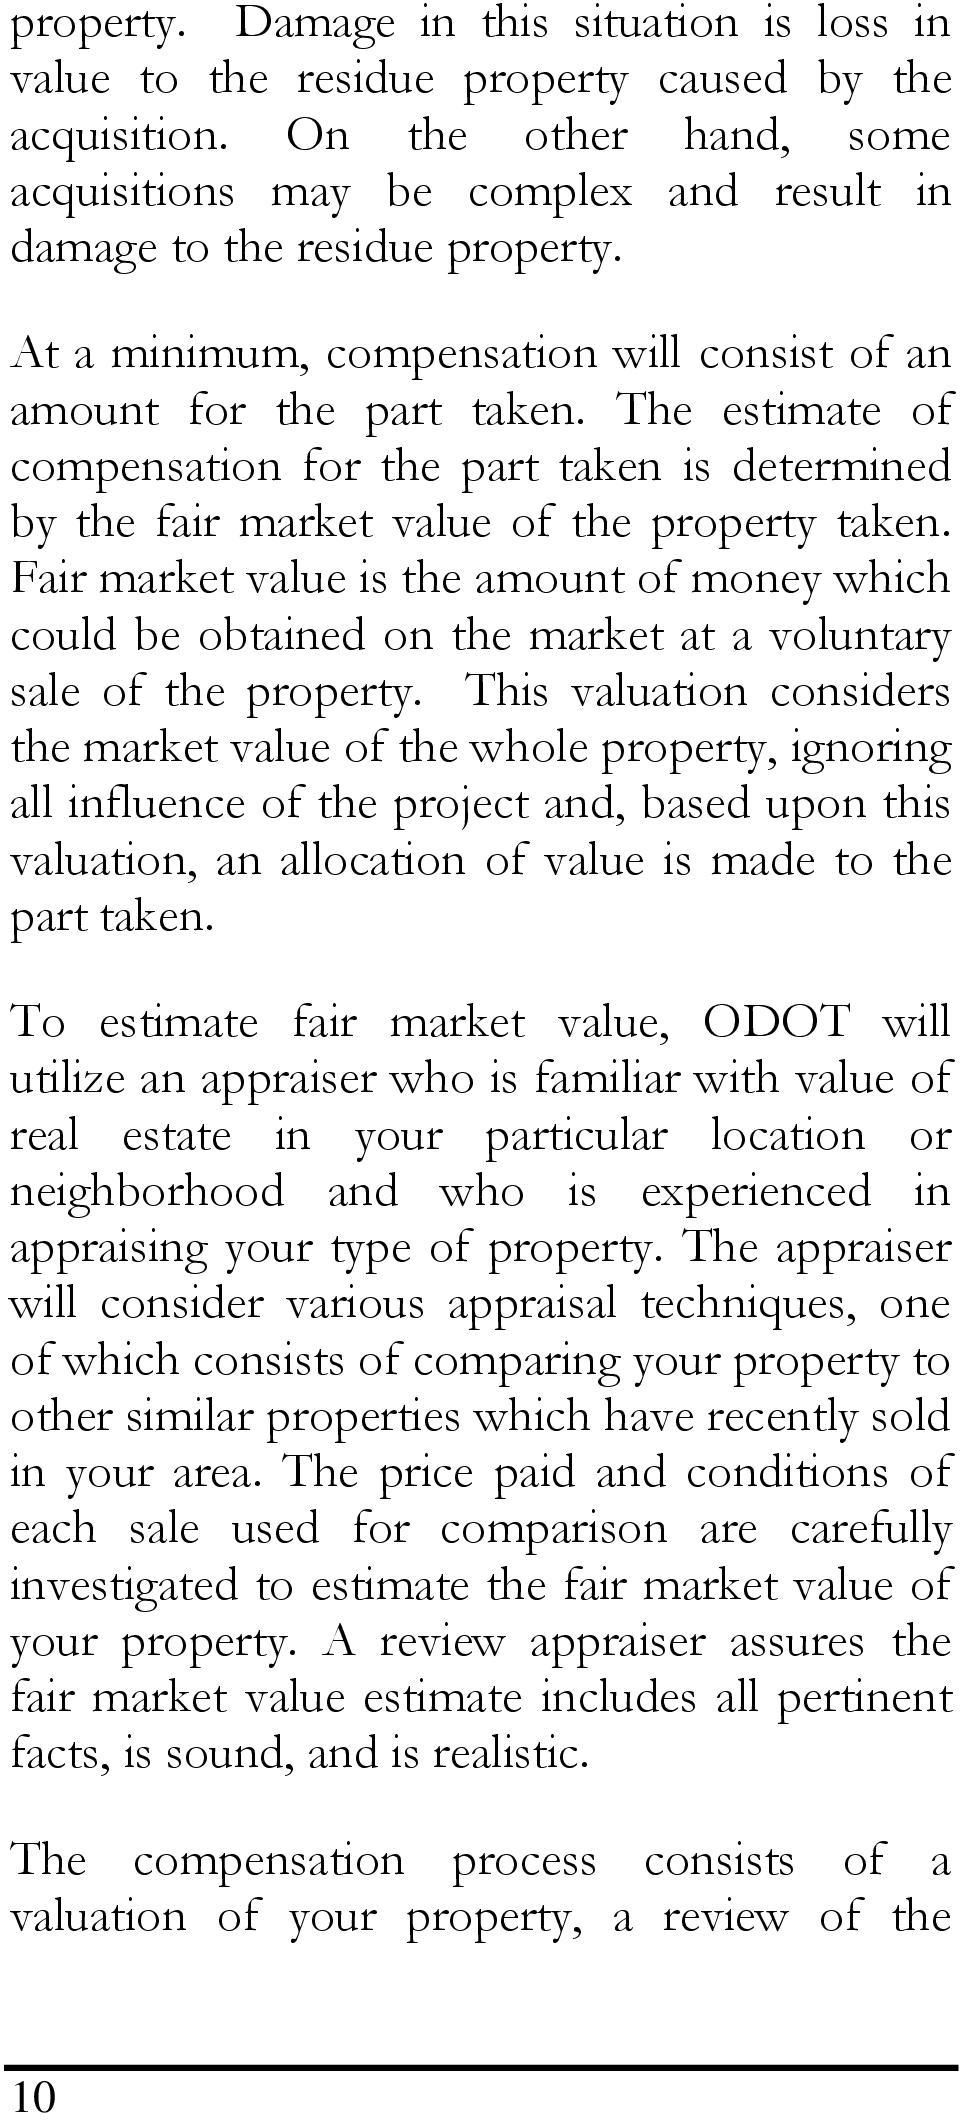 Fair market value is the amount of money which could be obtained on the market at a voluntary sale of the property.